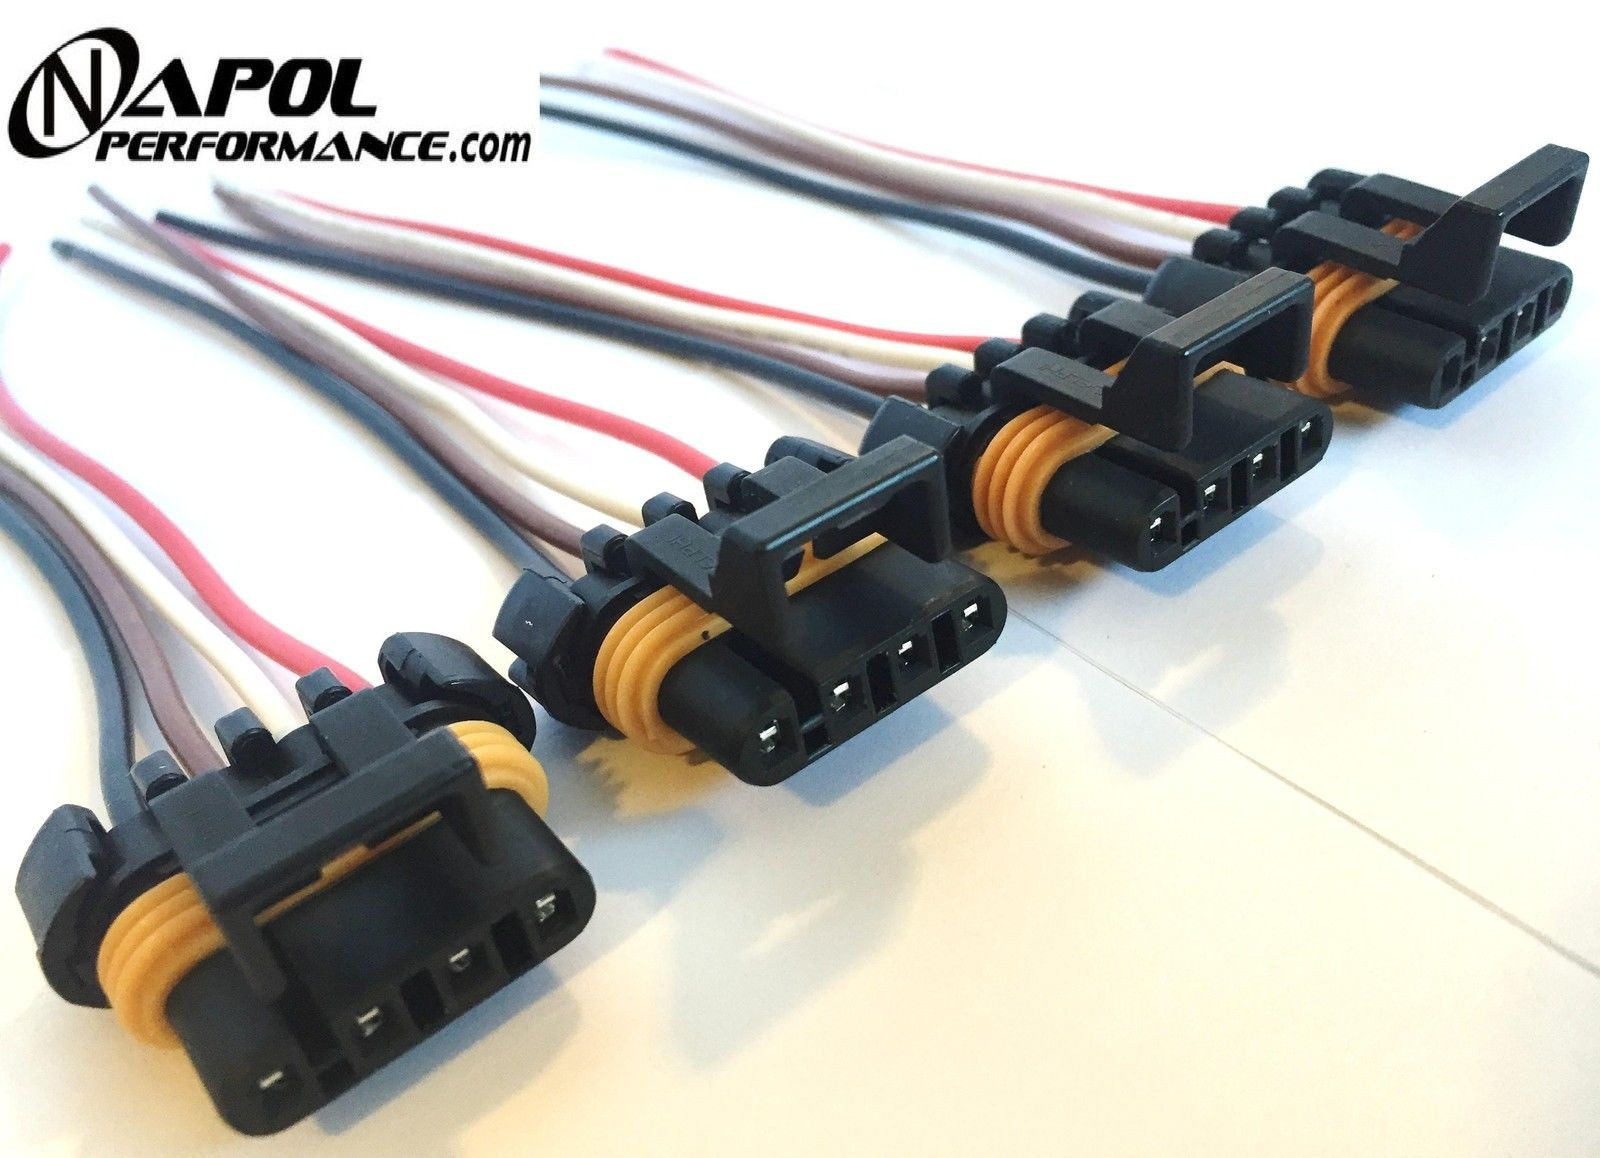 Tremendous 4 X Ls1 Ls6 Ignition Coil Wiring Harness Pigtail Connector Gm Camaro Zipur Mohammedshrine Wiring Diagrams Zipurmohammedshrineorg